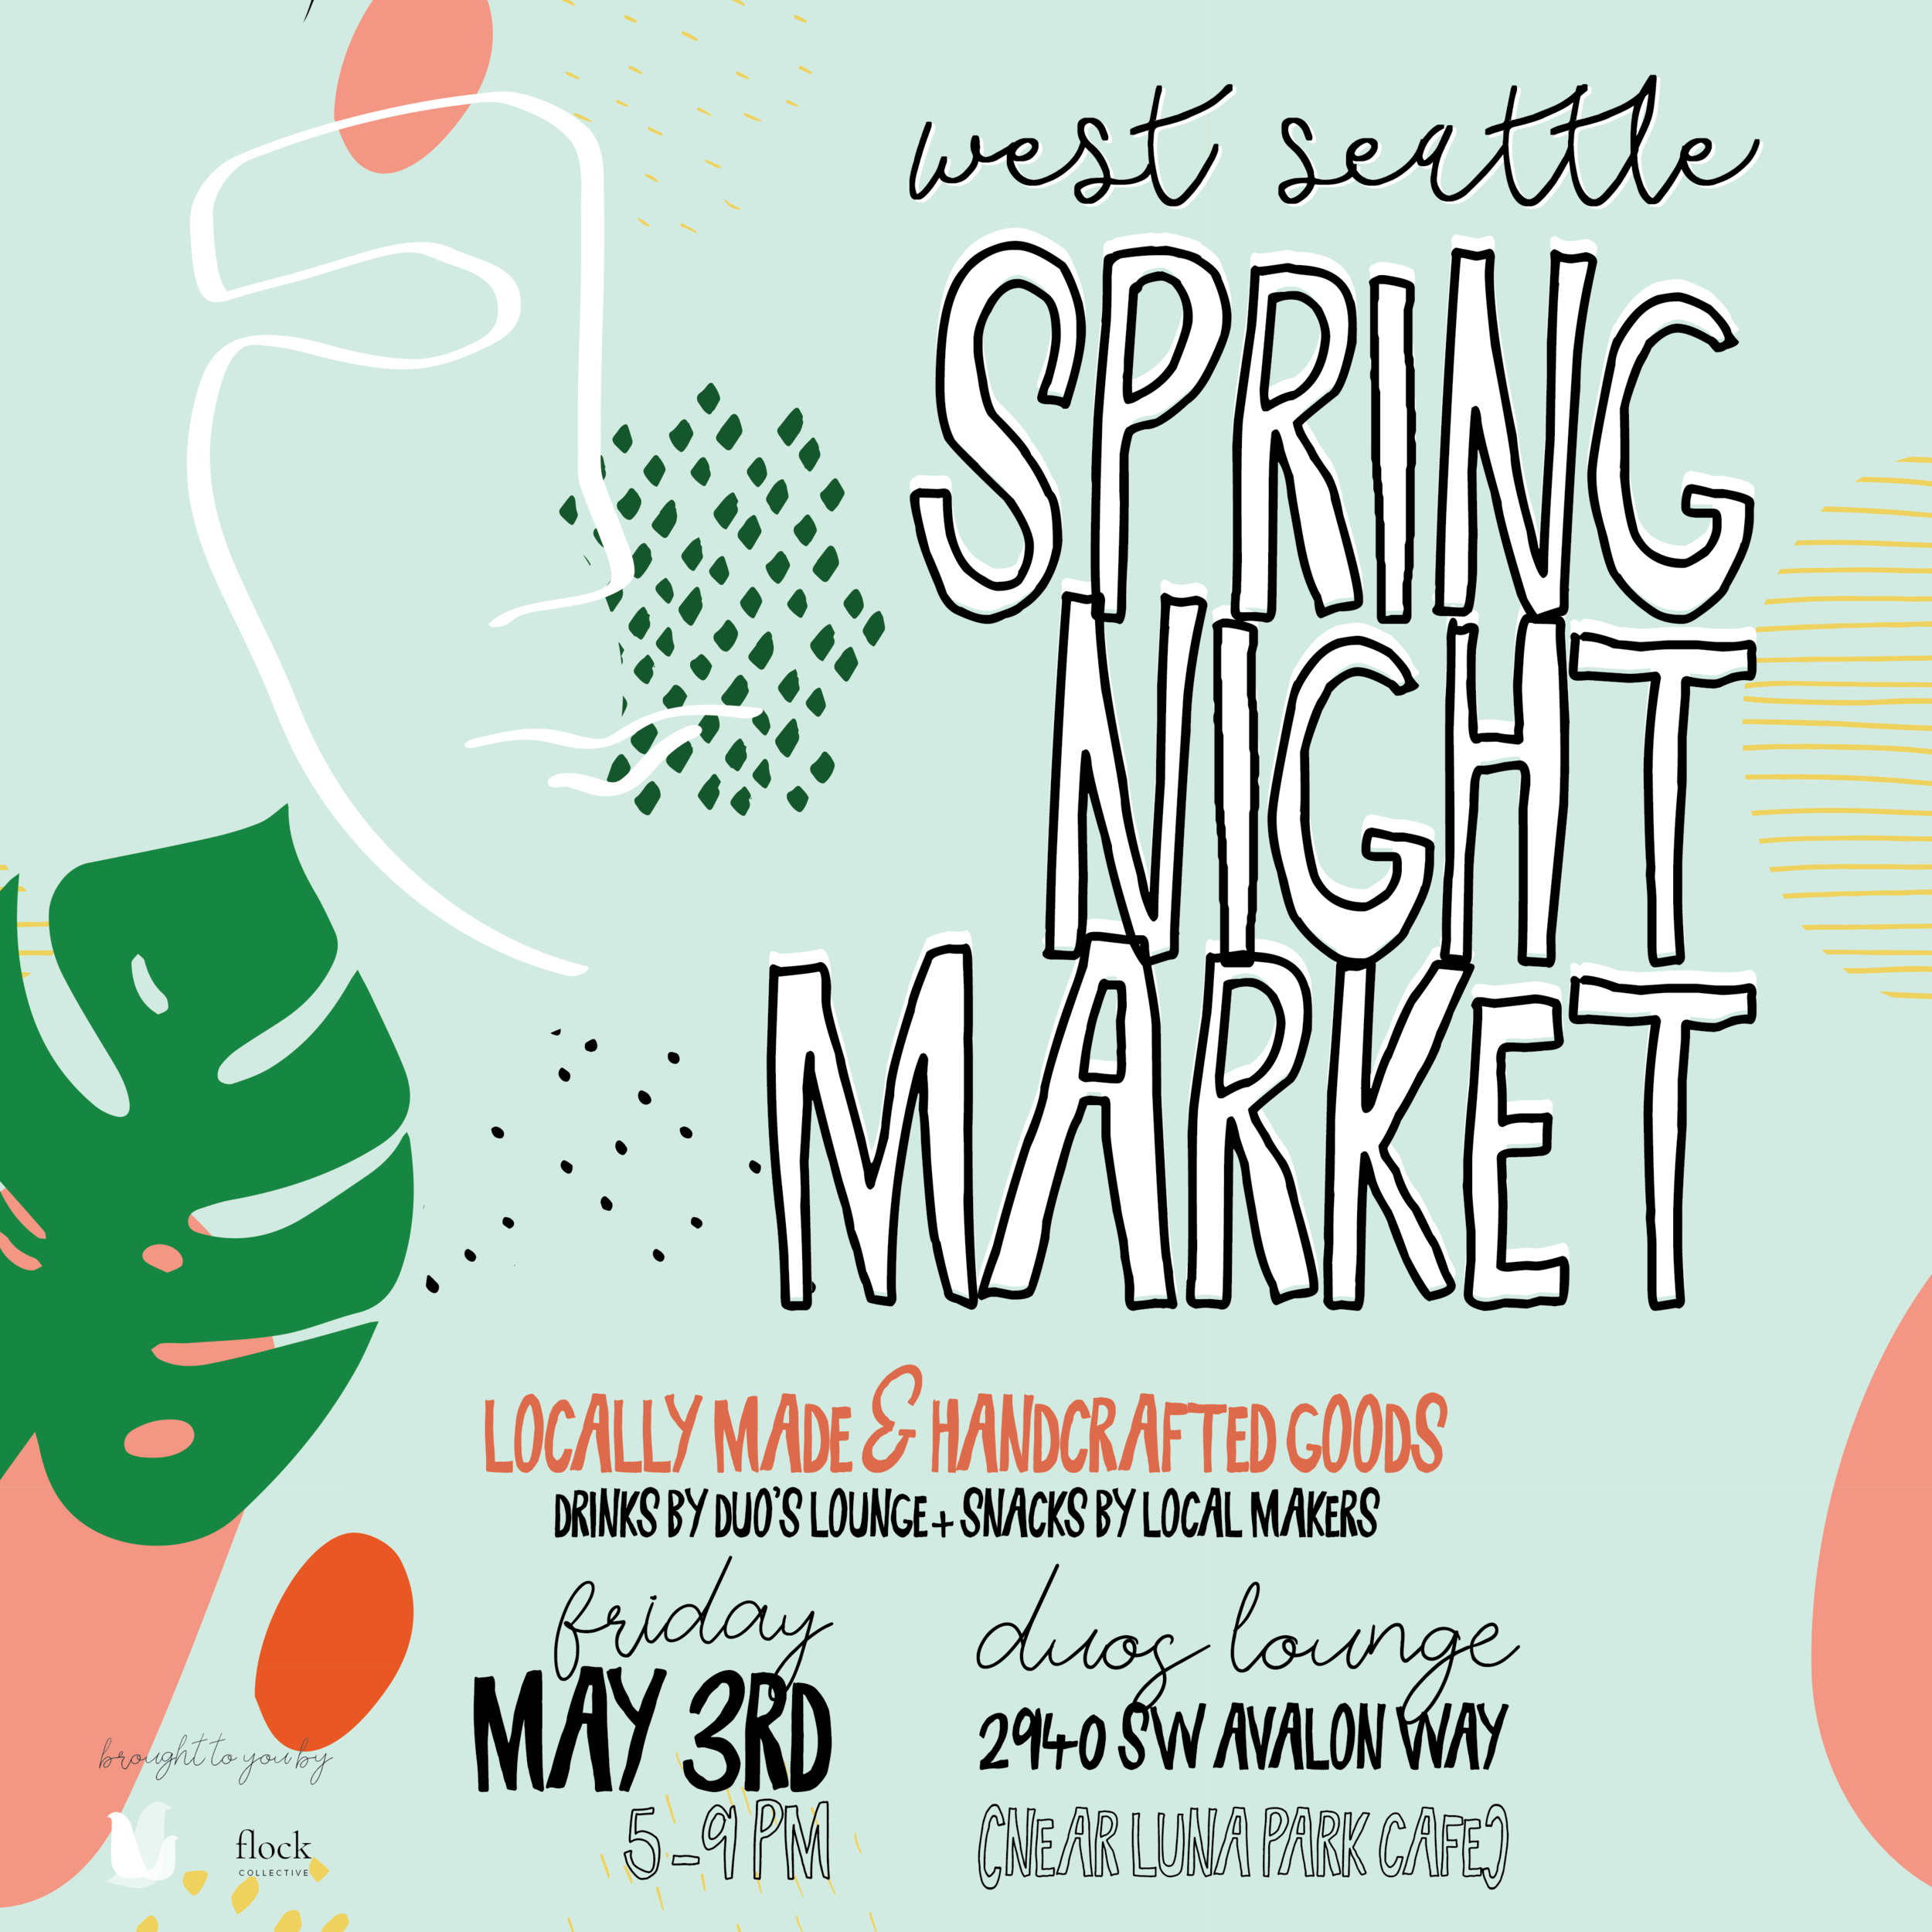 West Seattle Spring Night Market